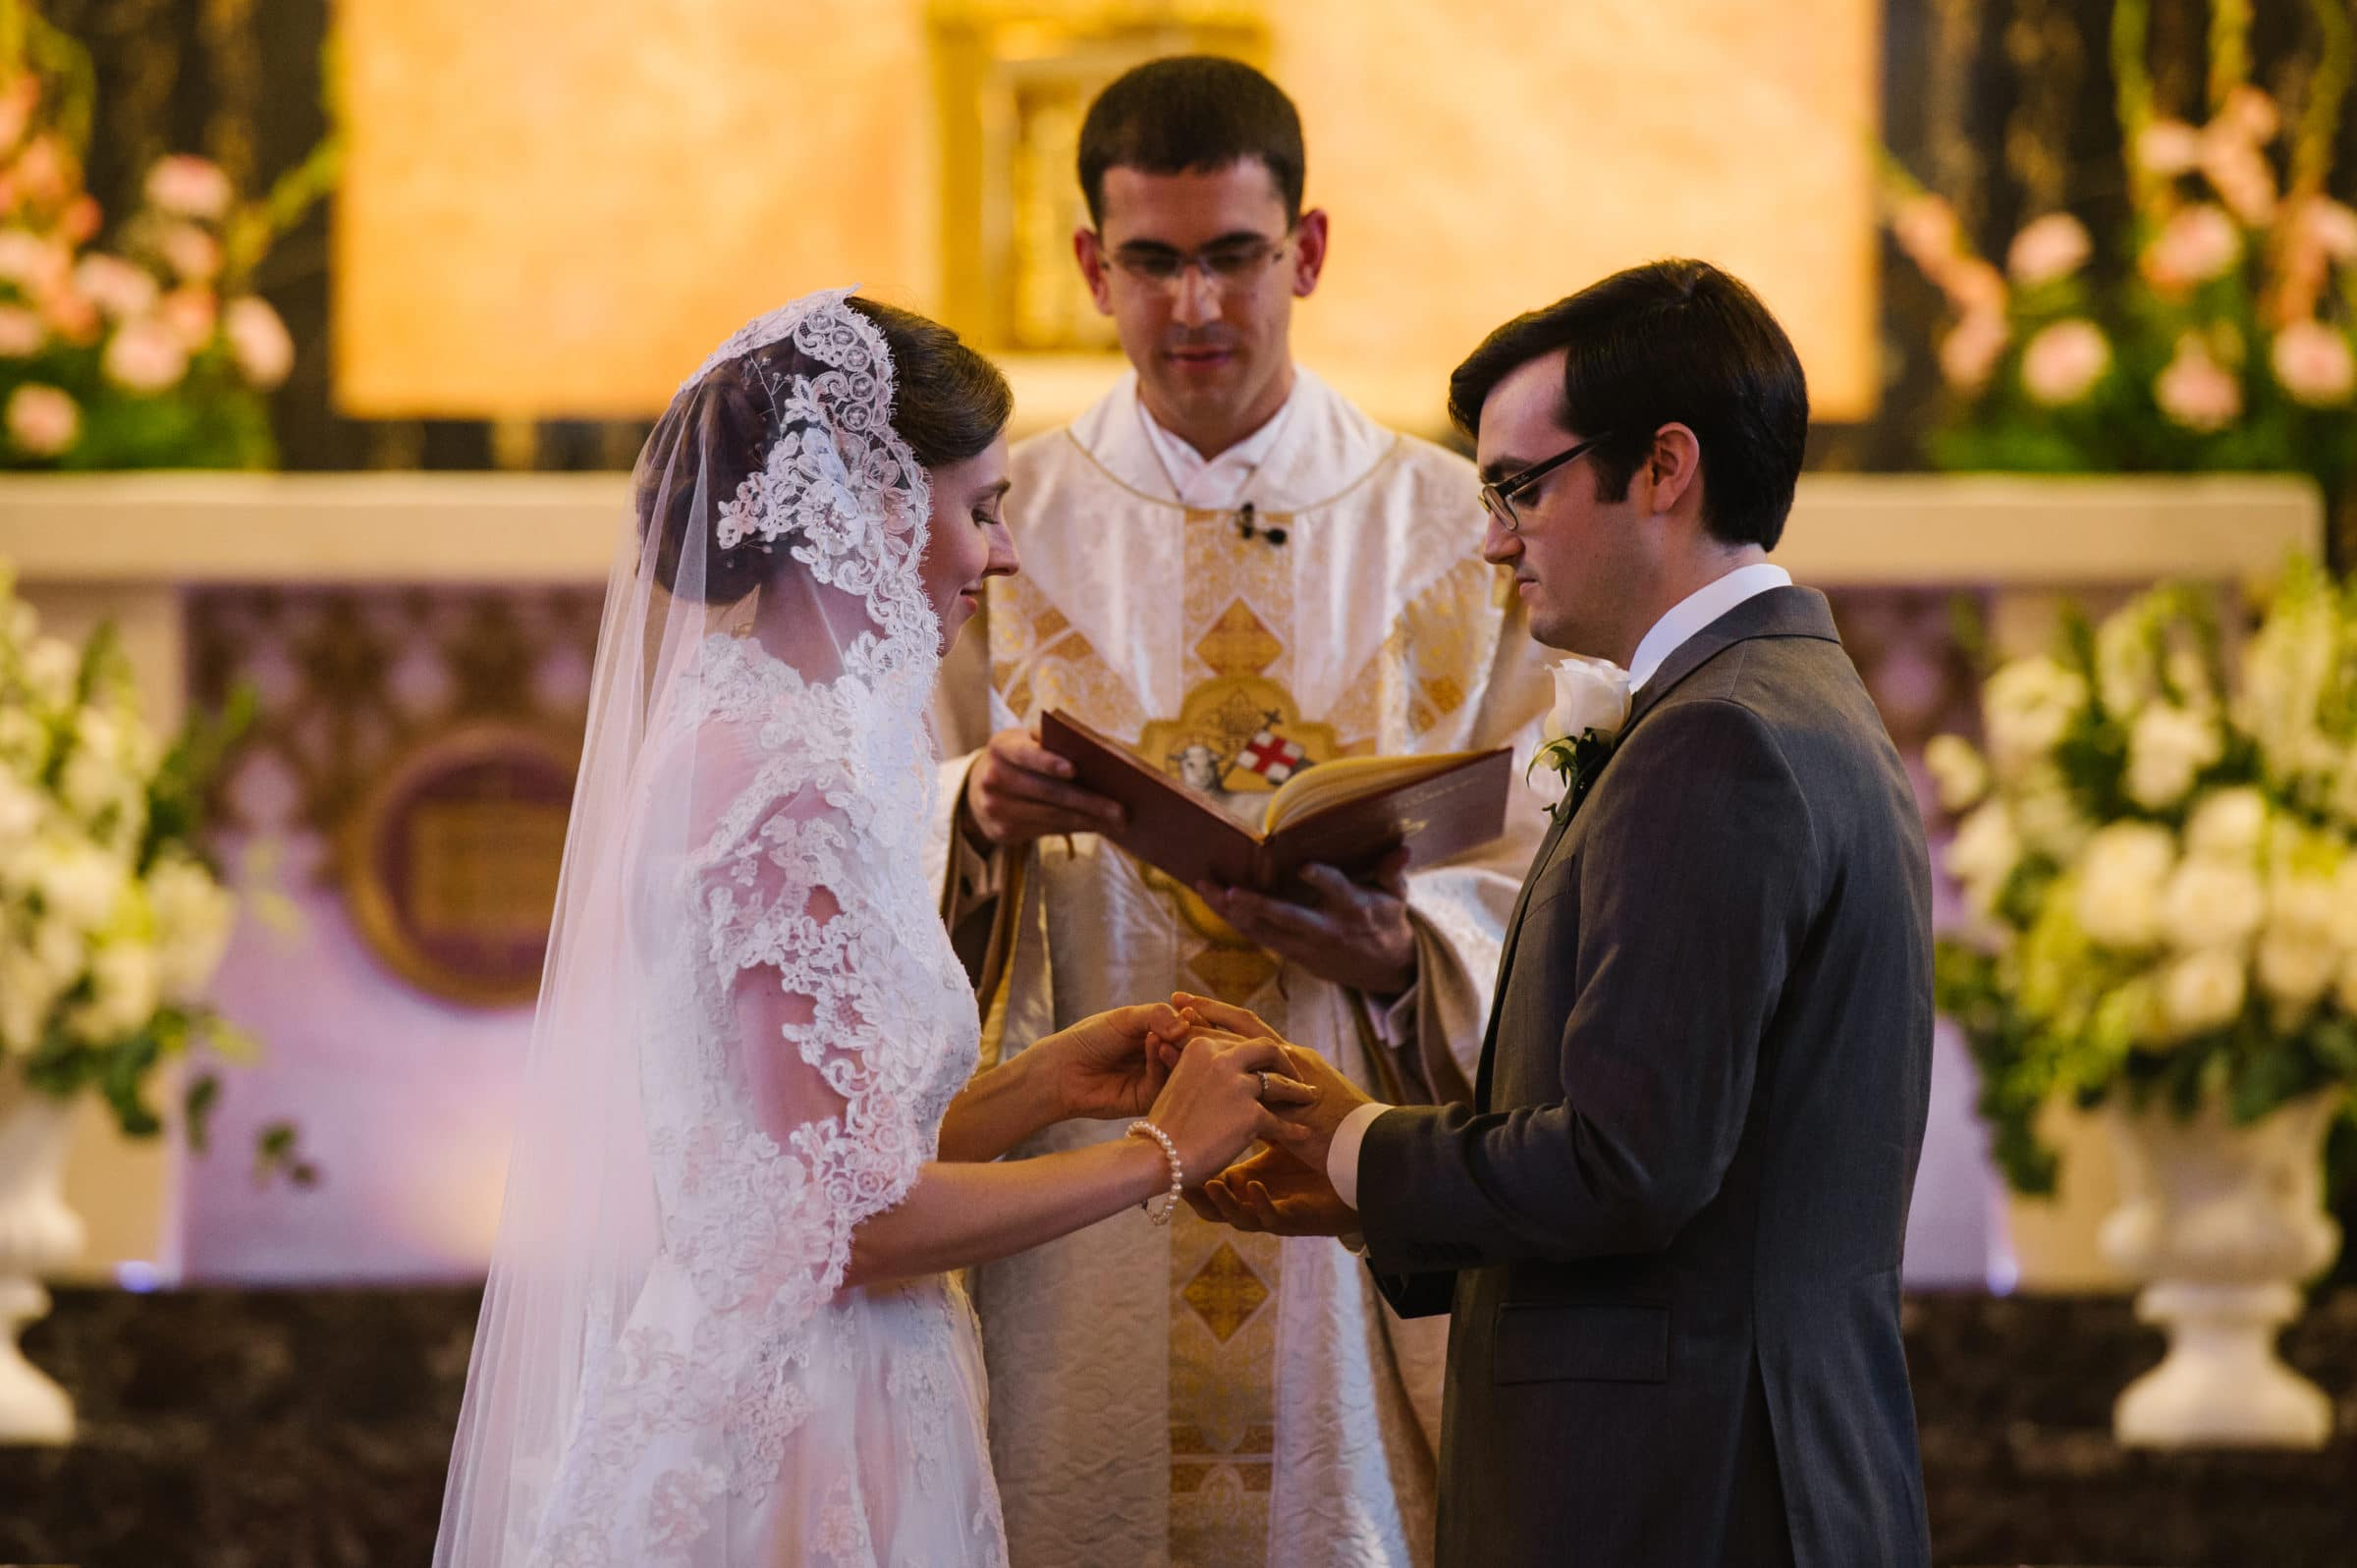 Princeton, New Jersey church wedding ceremony